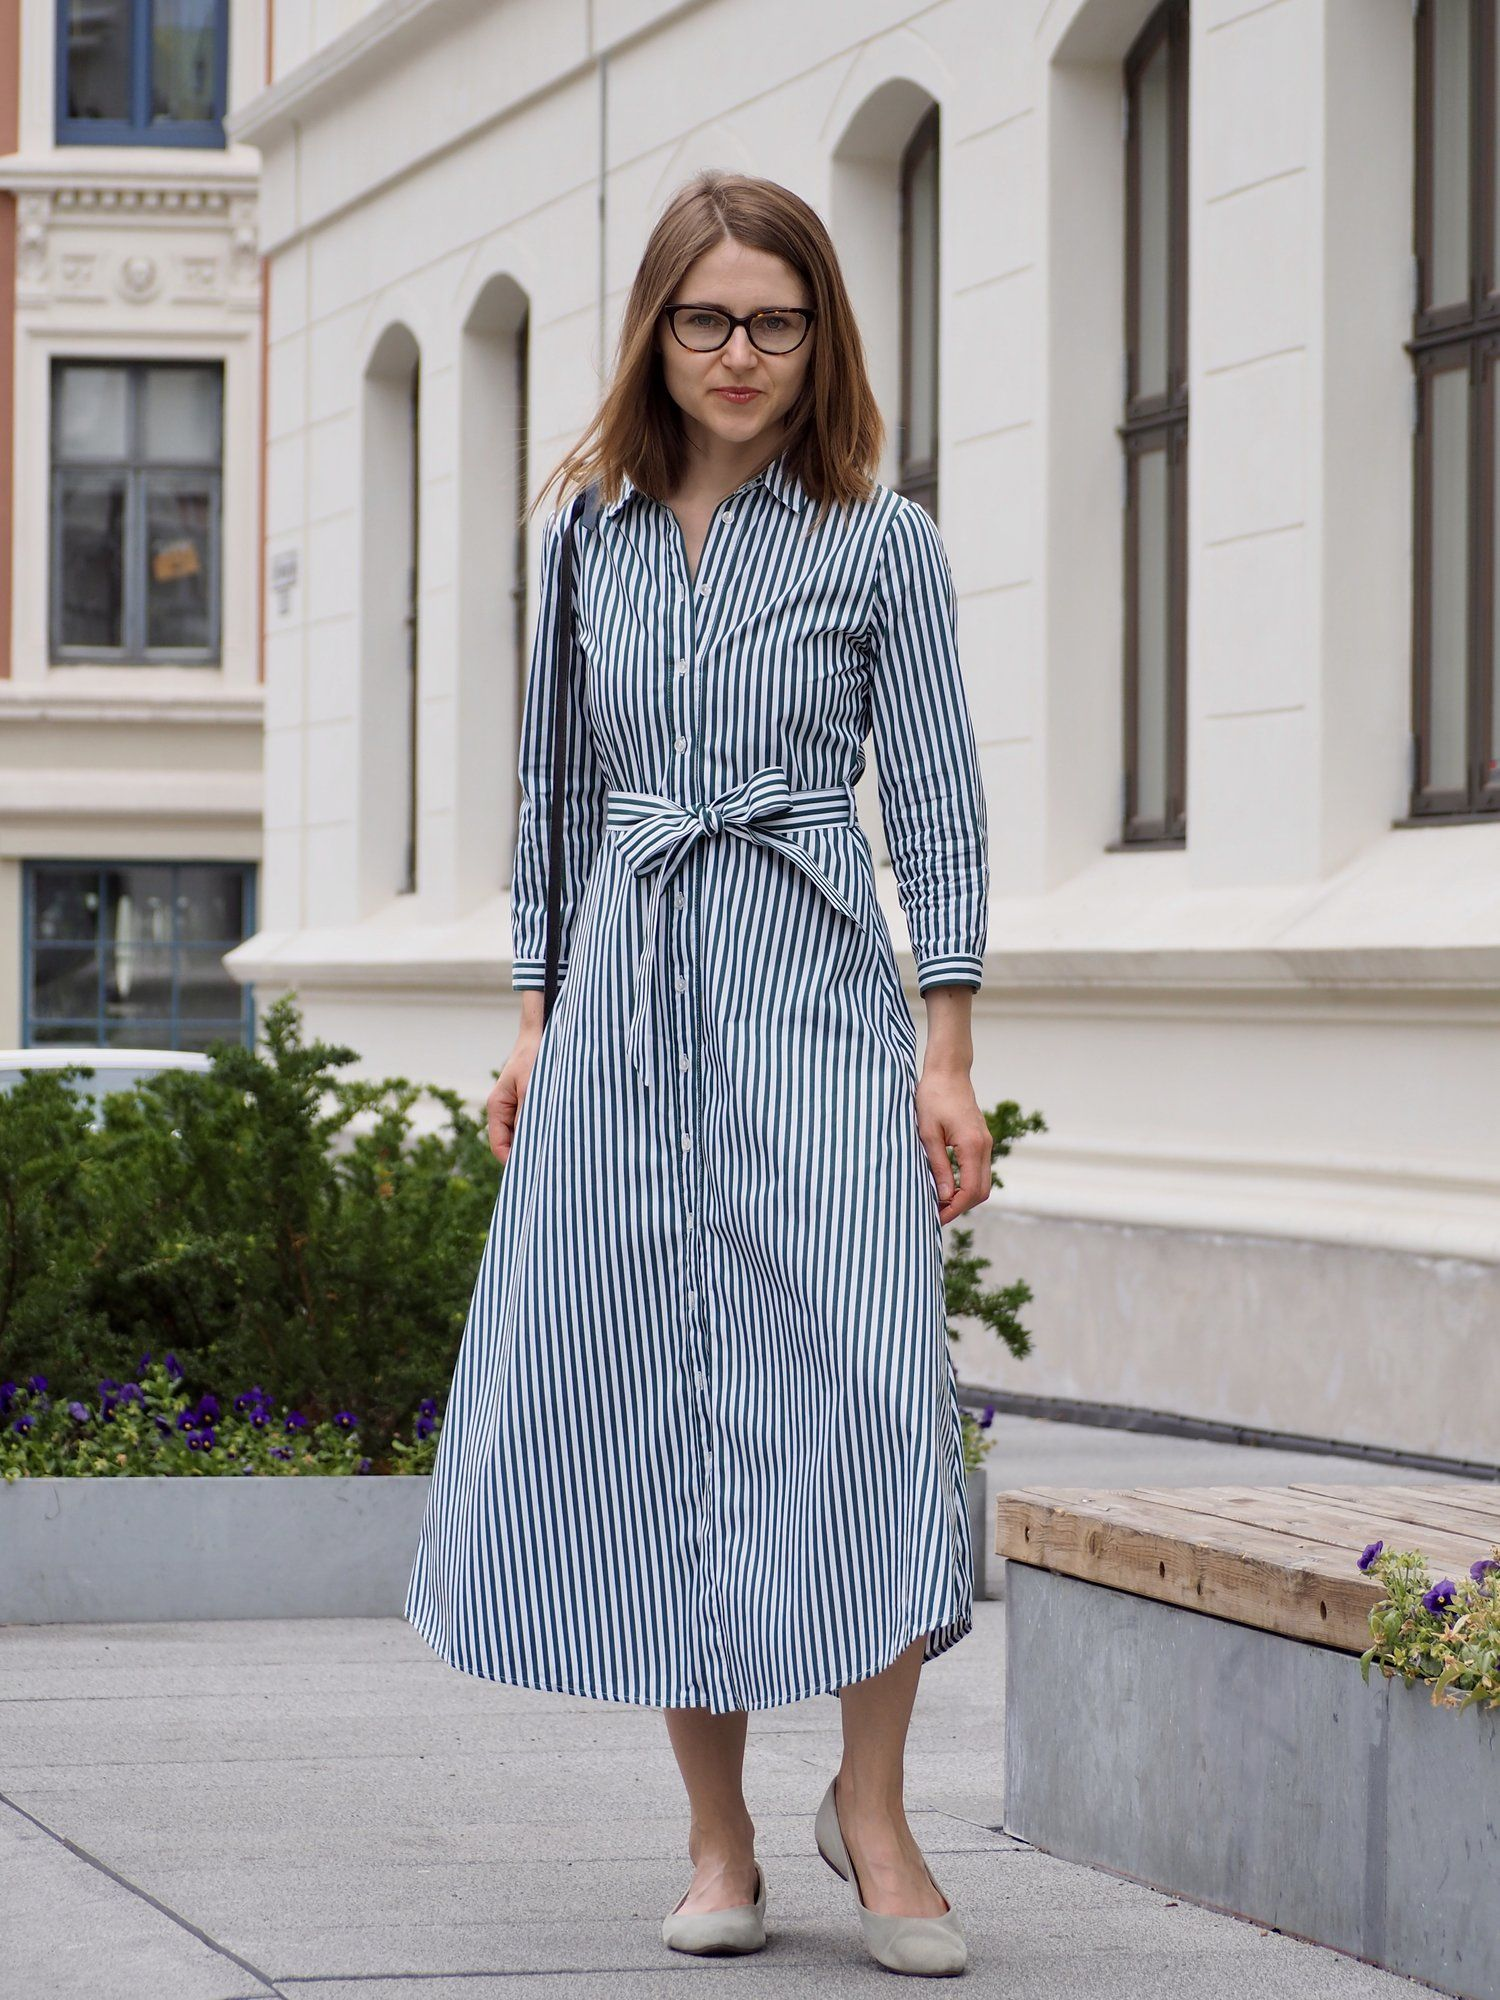 Shirt Dress For Summer In The Office Maria On Quality In 2021 Summer Dresses Dresses Winter Outfits Warm [ 2000 x 1500 Pixel ]